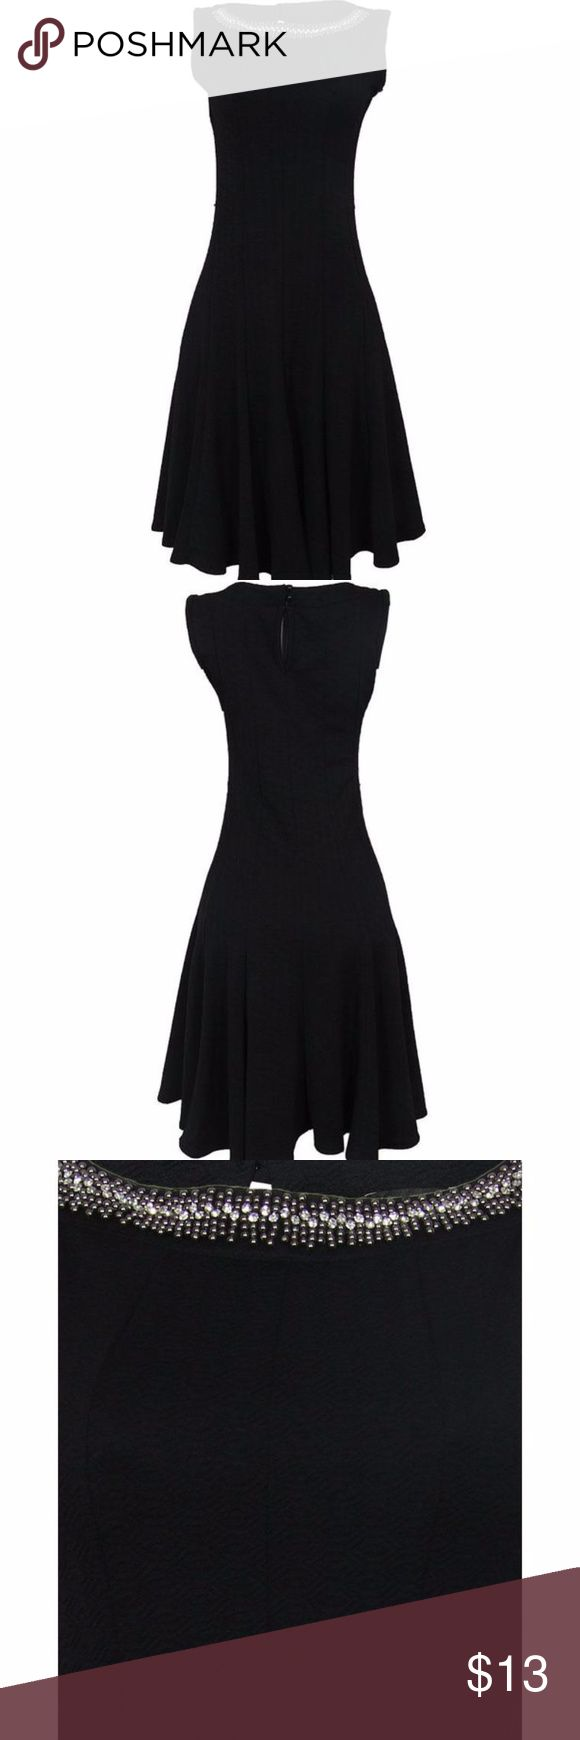 HAANI Petite BLACK DRESS (SIZE: PS) Haani Embellished Neckline Flared Dress - Black A ladylike fit and flare dress with a glamorous embellished front Stretch sturdy polyester/spandex fabric Sleeveless Seamed front and back for a perfect fit. Flared skirt Back button closure HAANI Petite Dresses